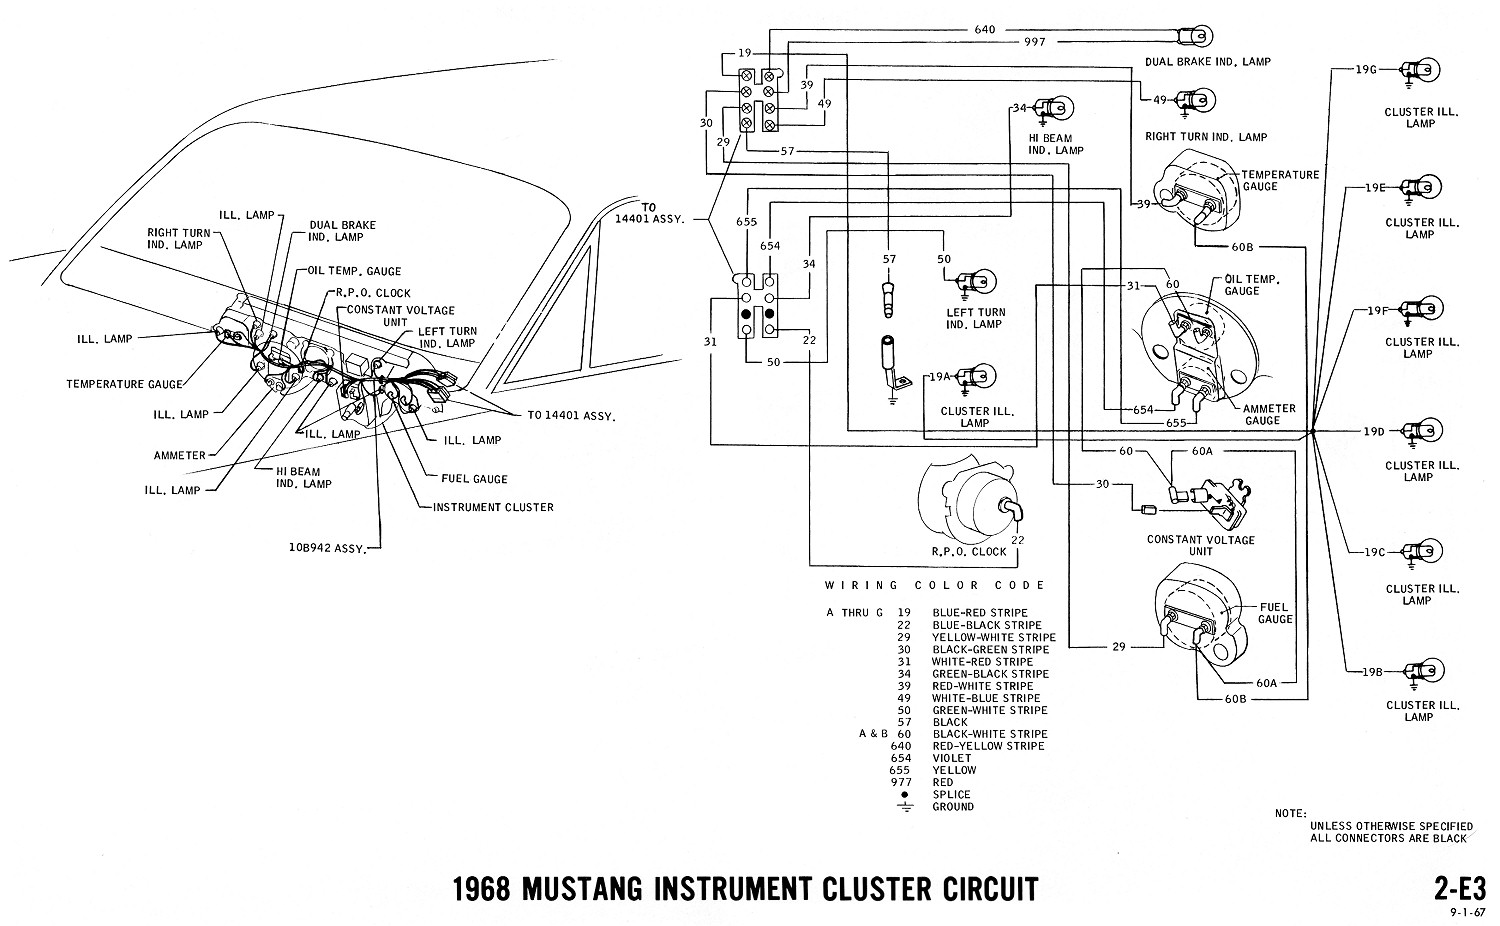 1968 mustang horn wiring diagram data wiring diagram1968 mustang wiring diagrams evolving software 1965 mustang horn wiring 1968 mustang horn wiring diagram